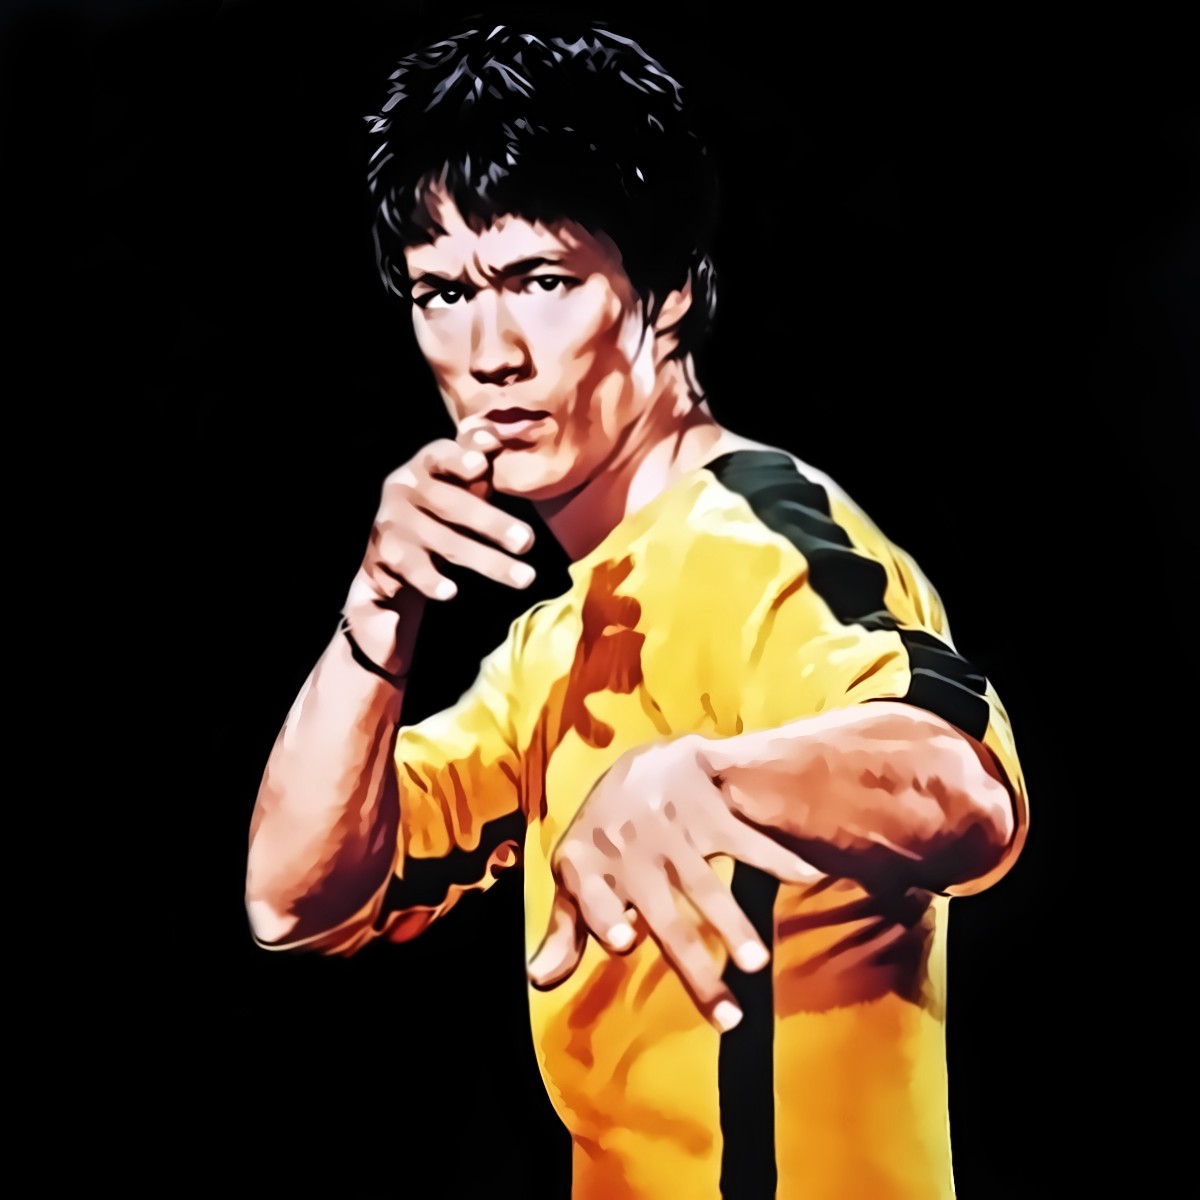 Bruce Lee Iphone Wallpaper (With images) Bruce lee